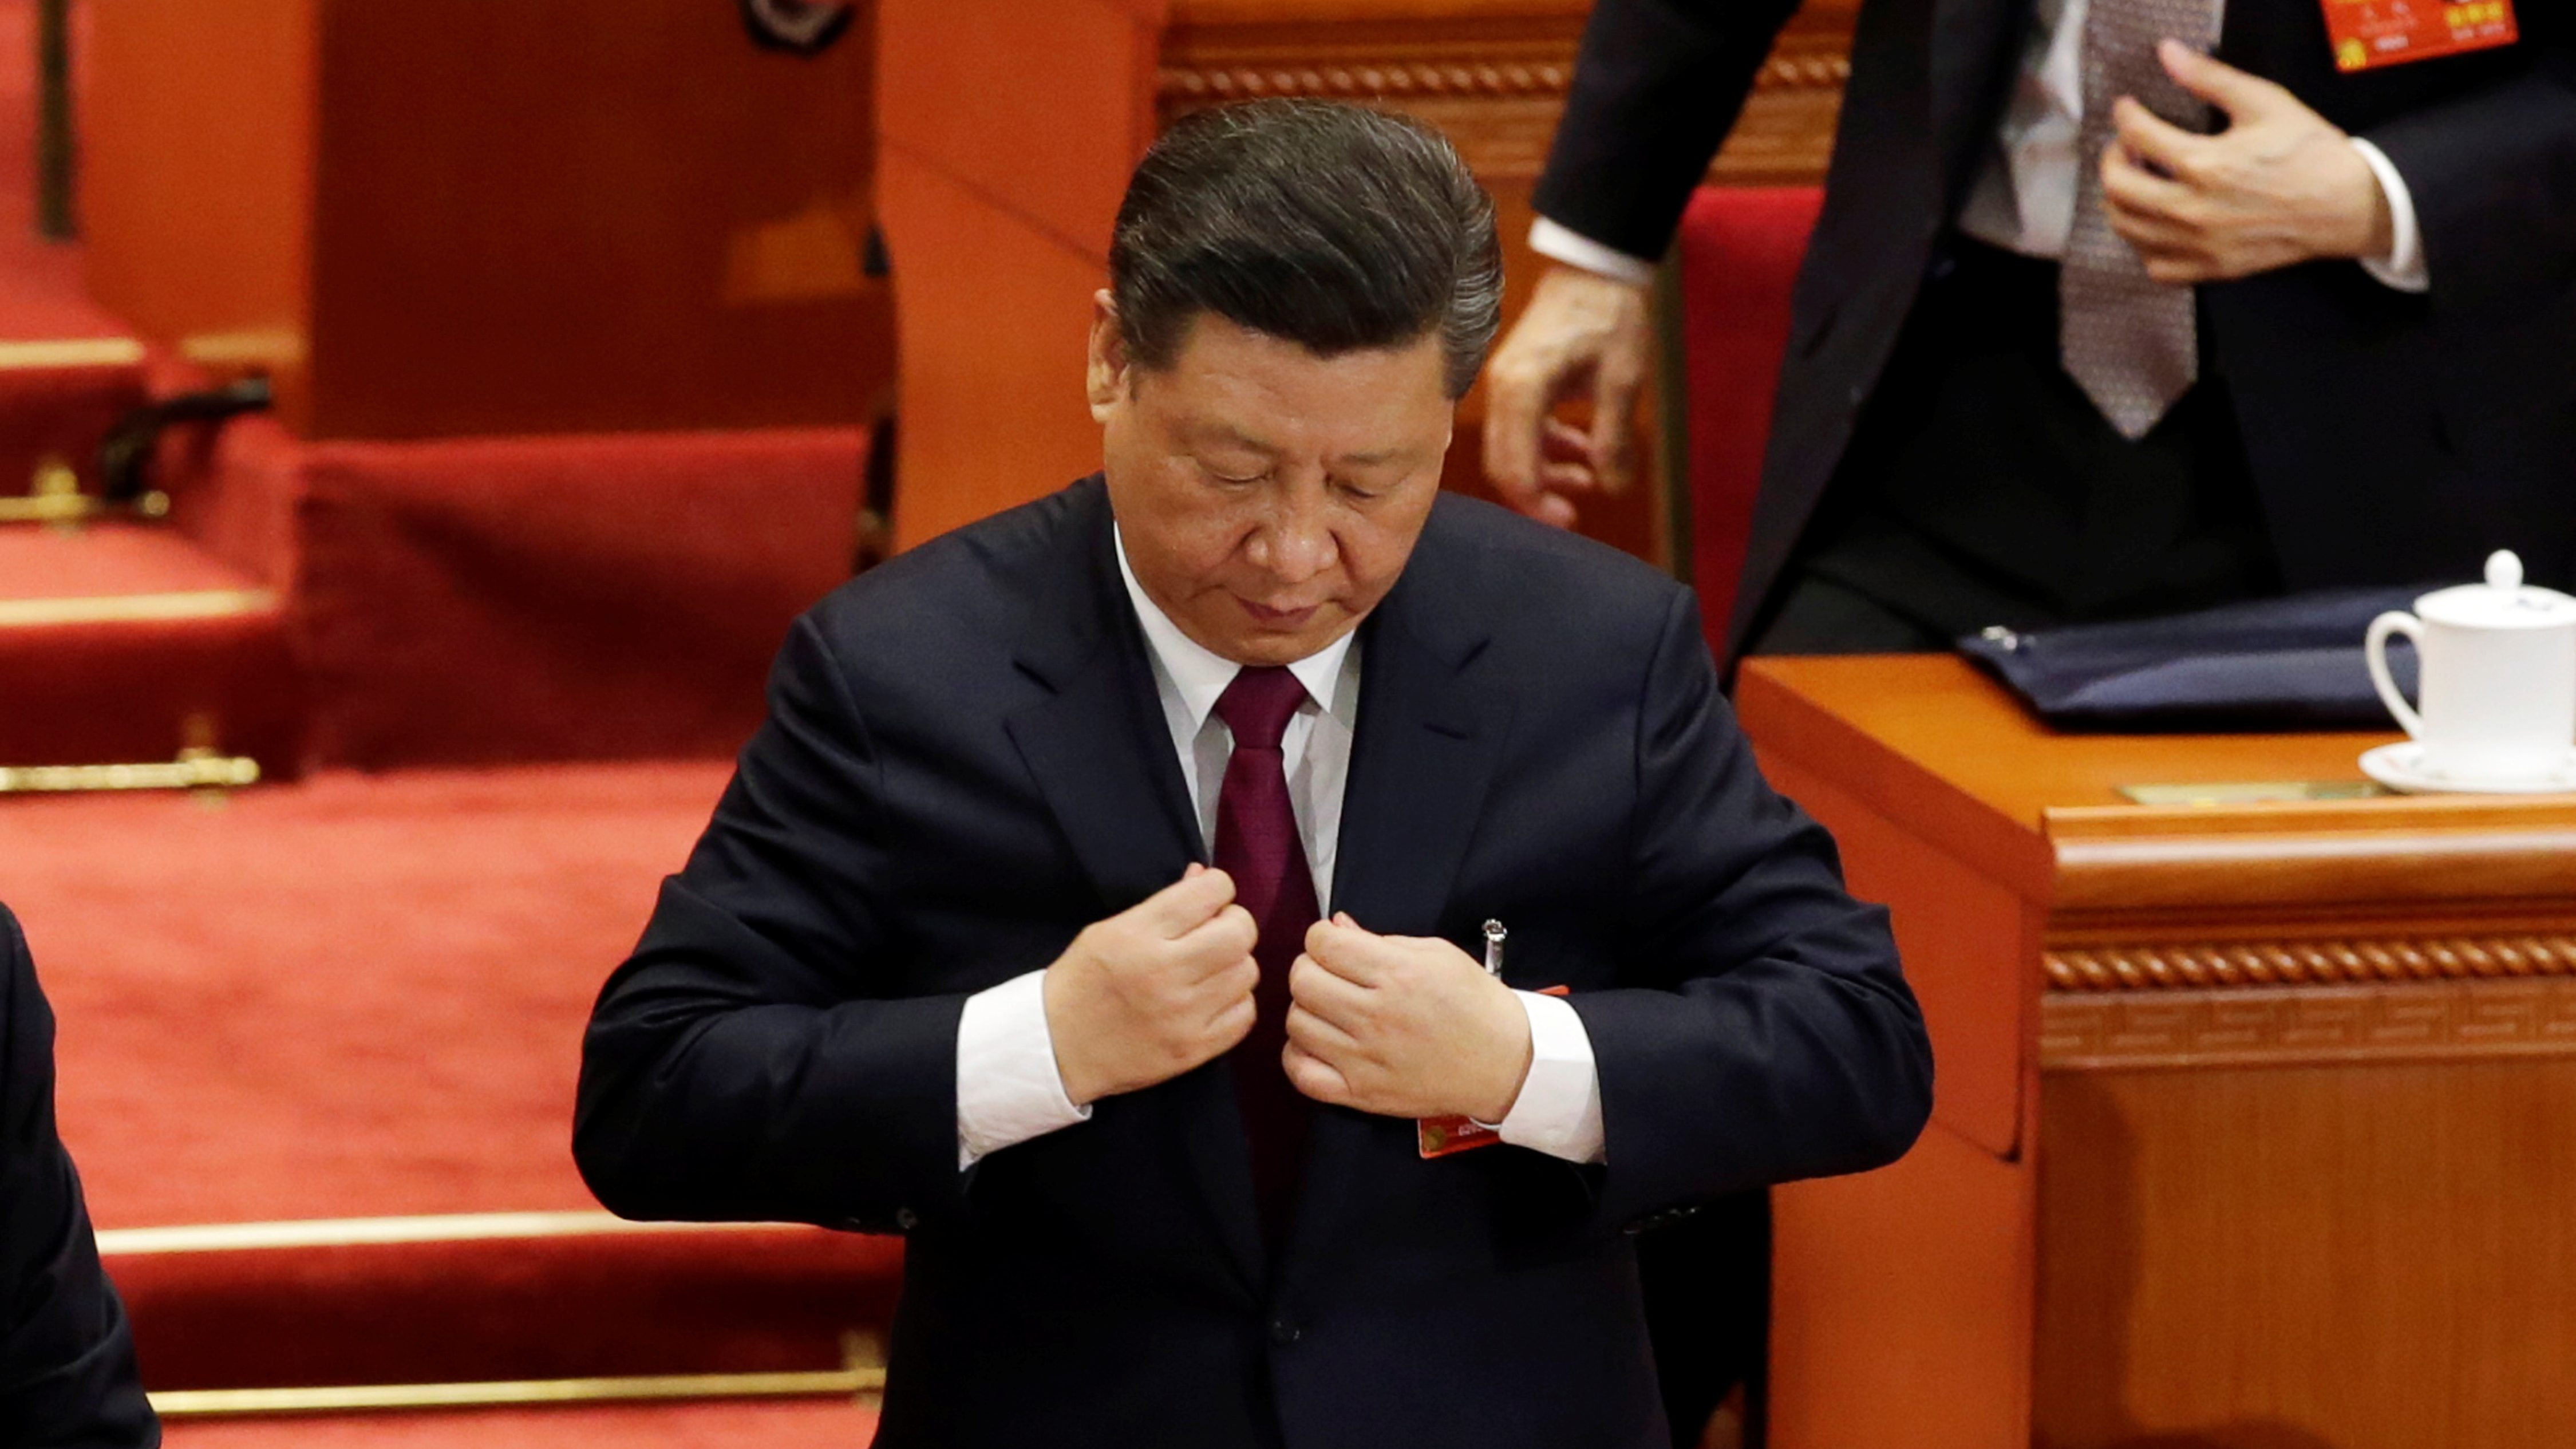 Chinese President Xi Jinping adjusts his attire at the end of the opening session of the National People's Congress (NPC) at the Great Hall of the People in Beijing, China March 5, 2018.